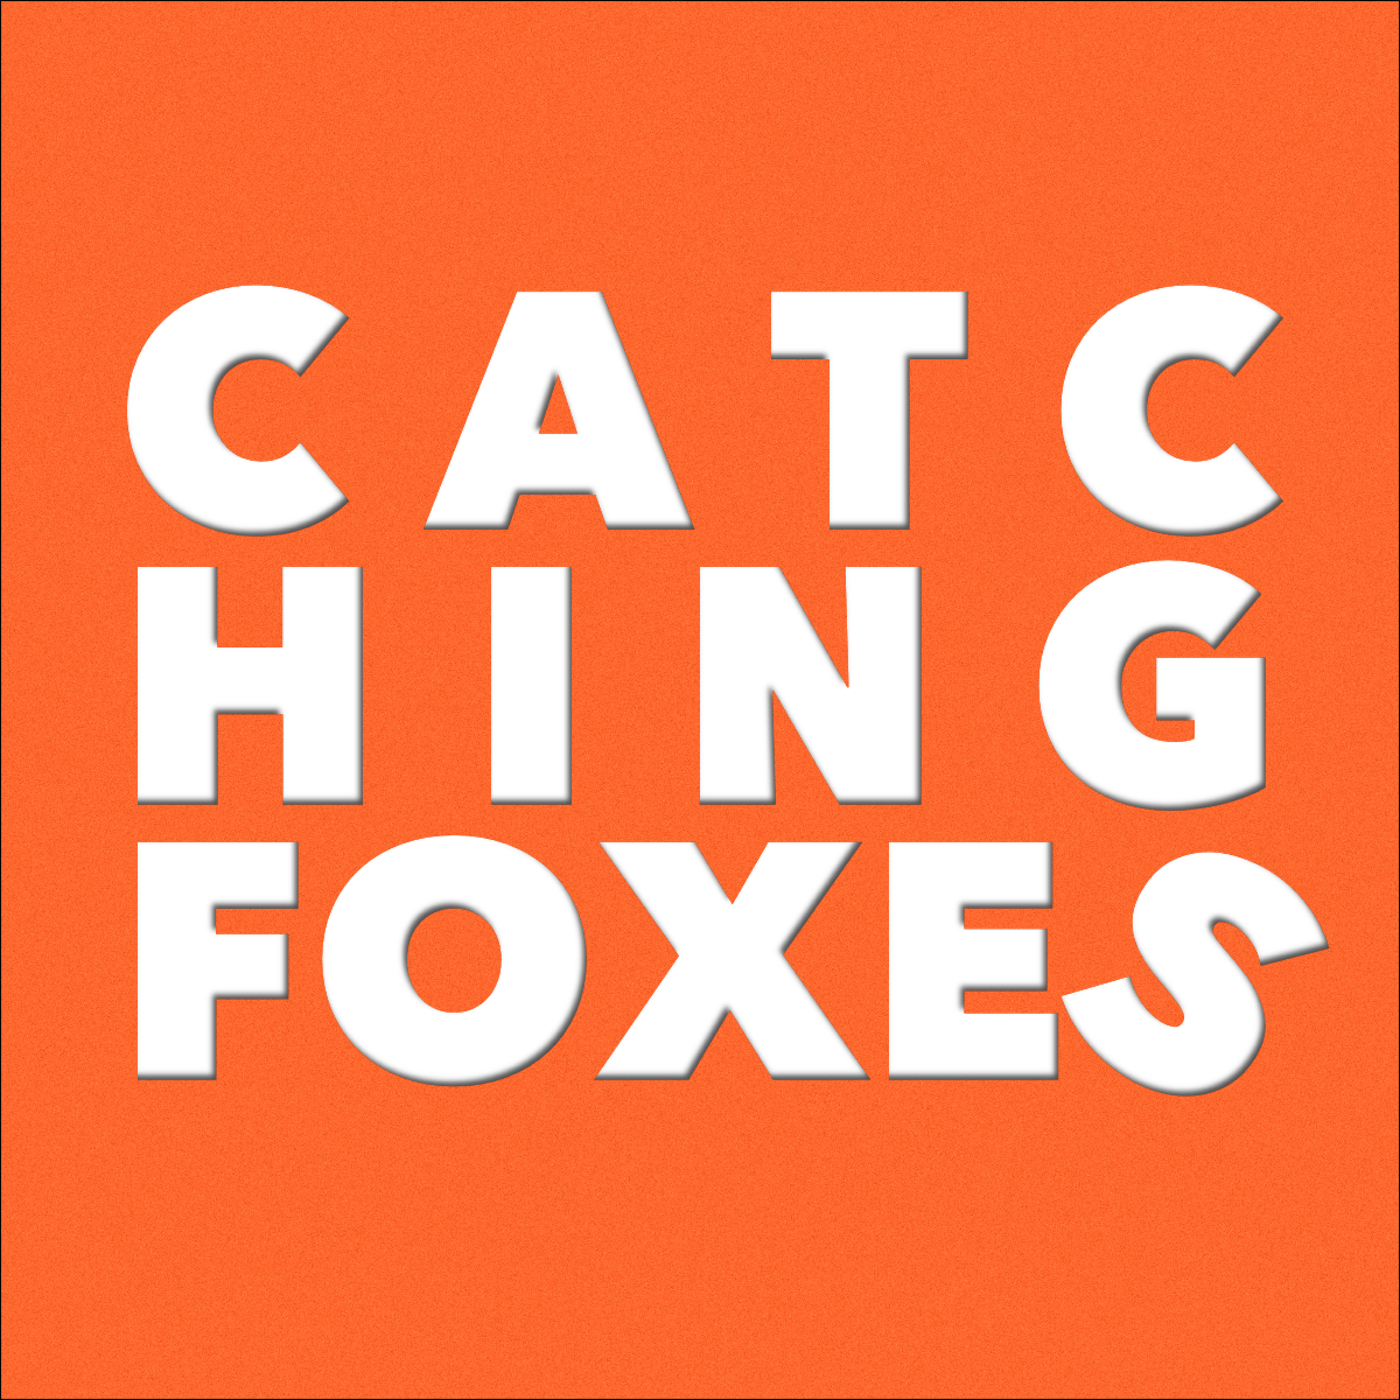 Catching Foxes - LayEvangelist